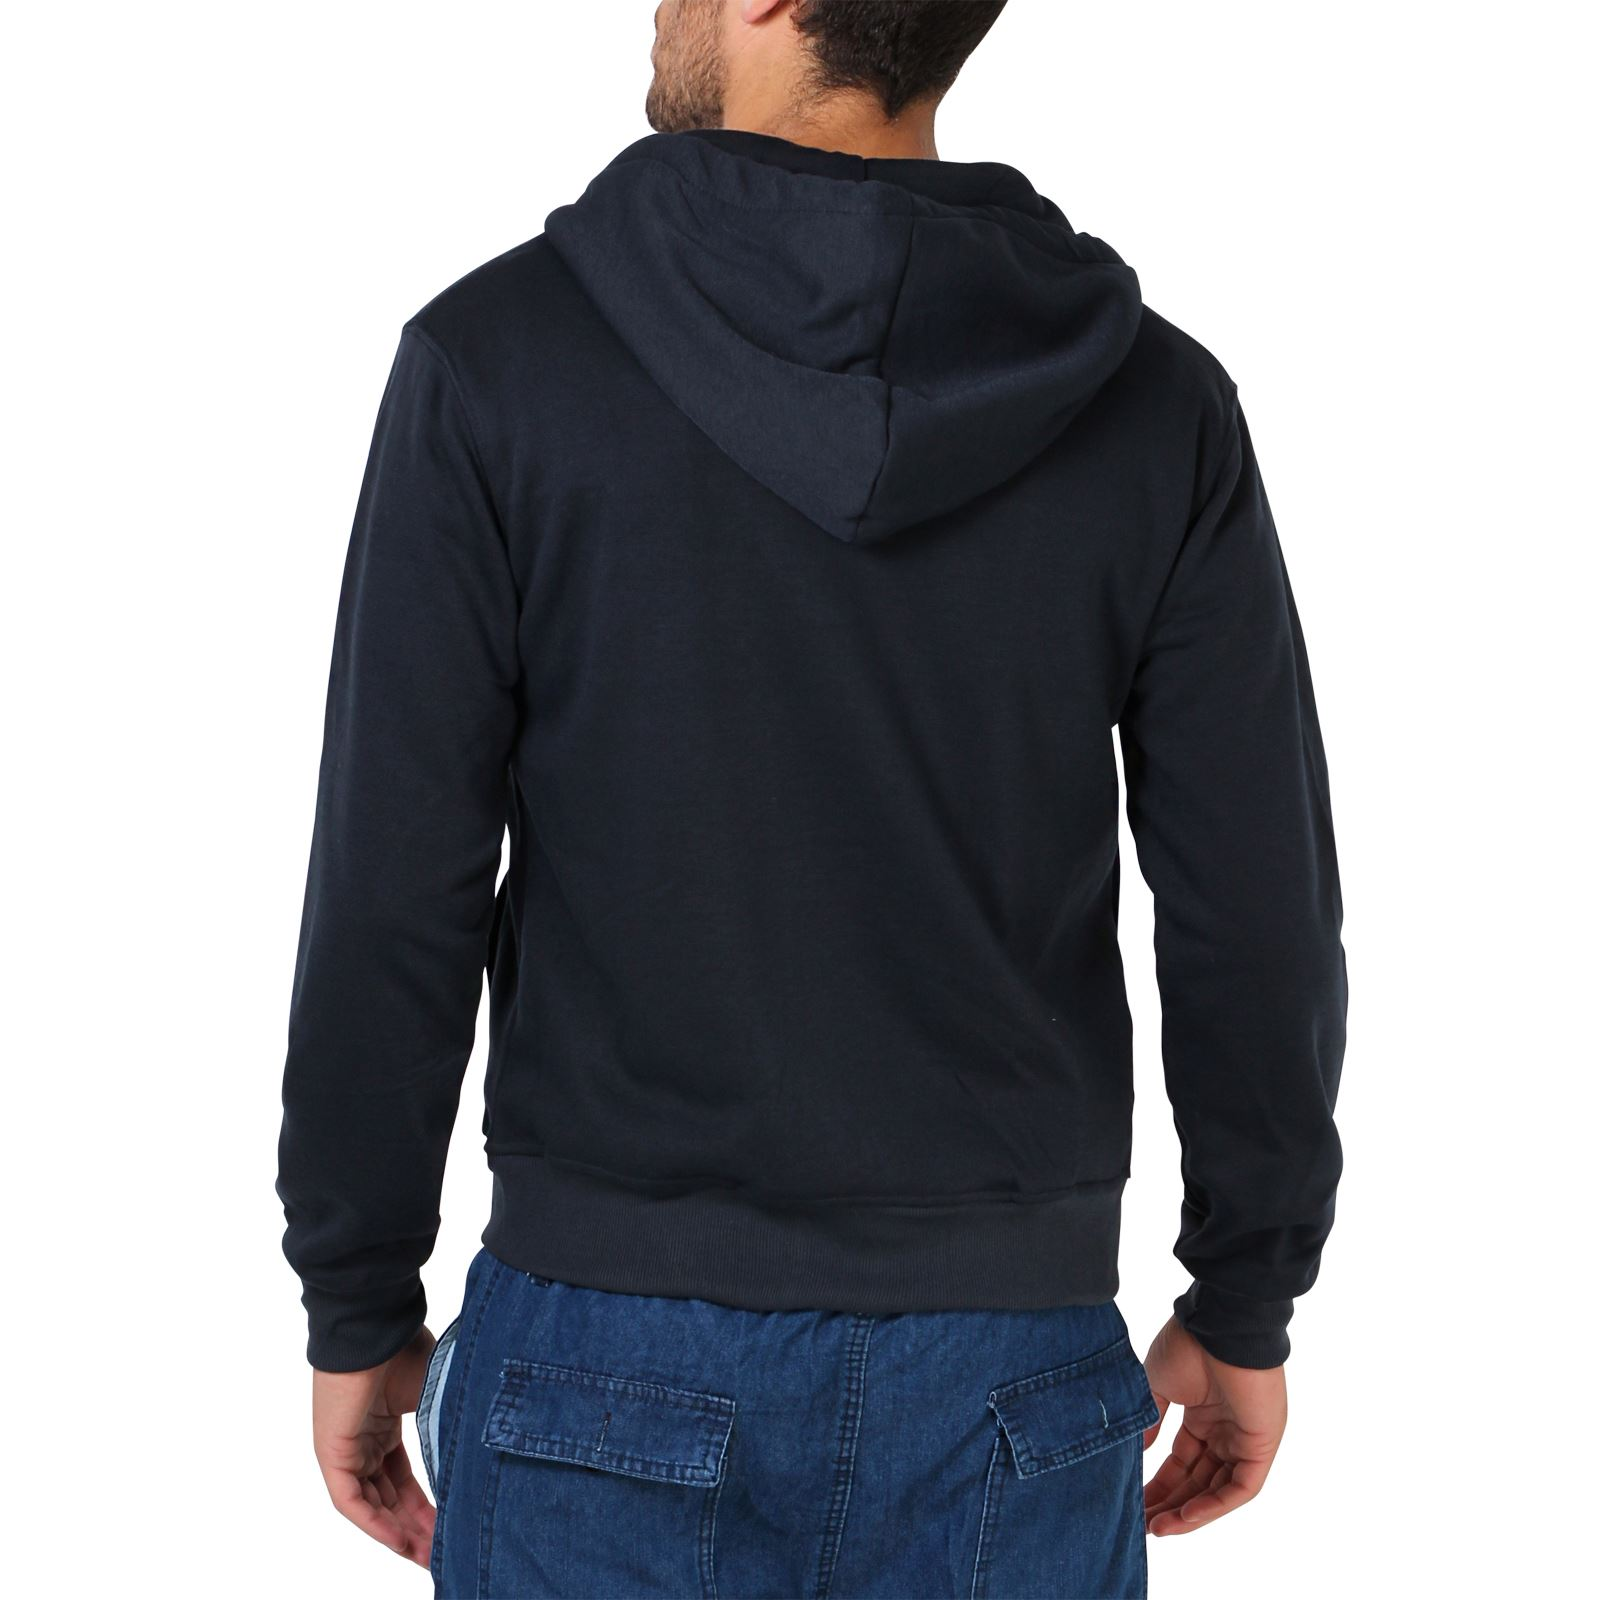 Remember, ordinary sweatshirt material is usually about ounce cotton yarn fleece. These CottonMill sweatshirts are made from % cotton 20 ounce yarns, % pure cotton, Made in Canada! Although this item is % Cotton, there are trace amounts of lycra spandex in the trim.